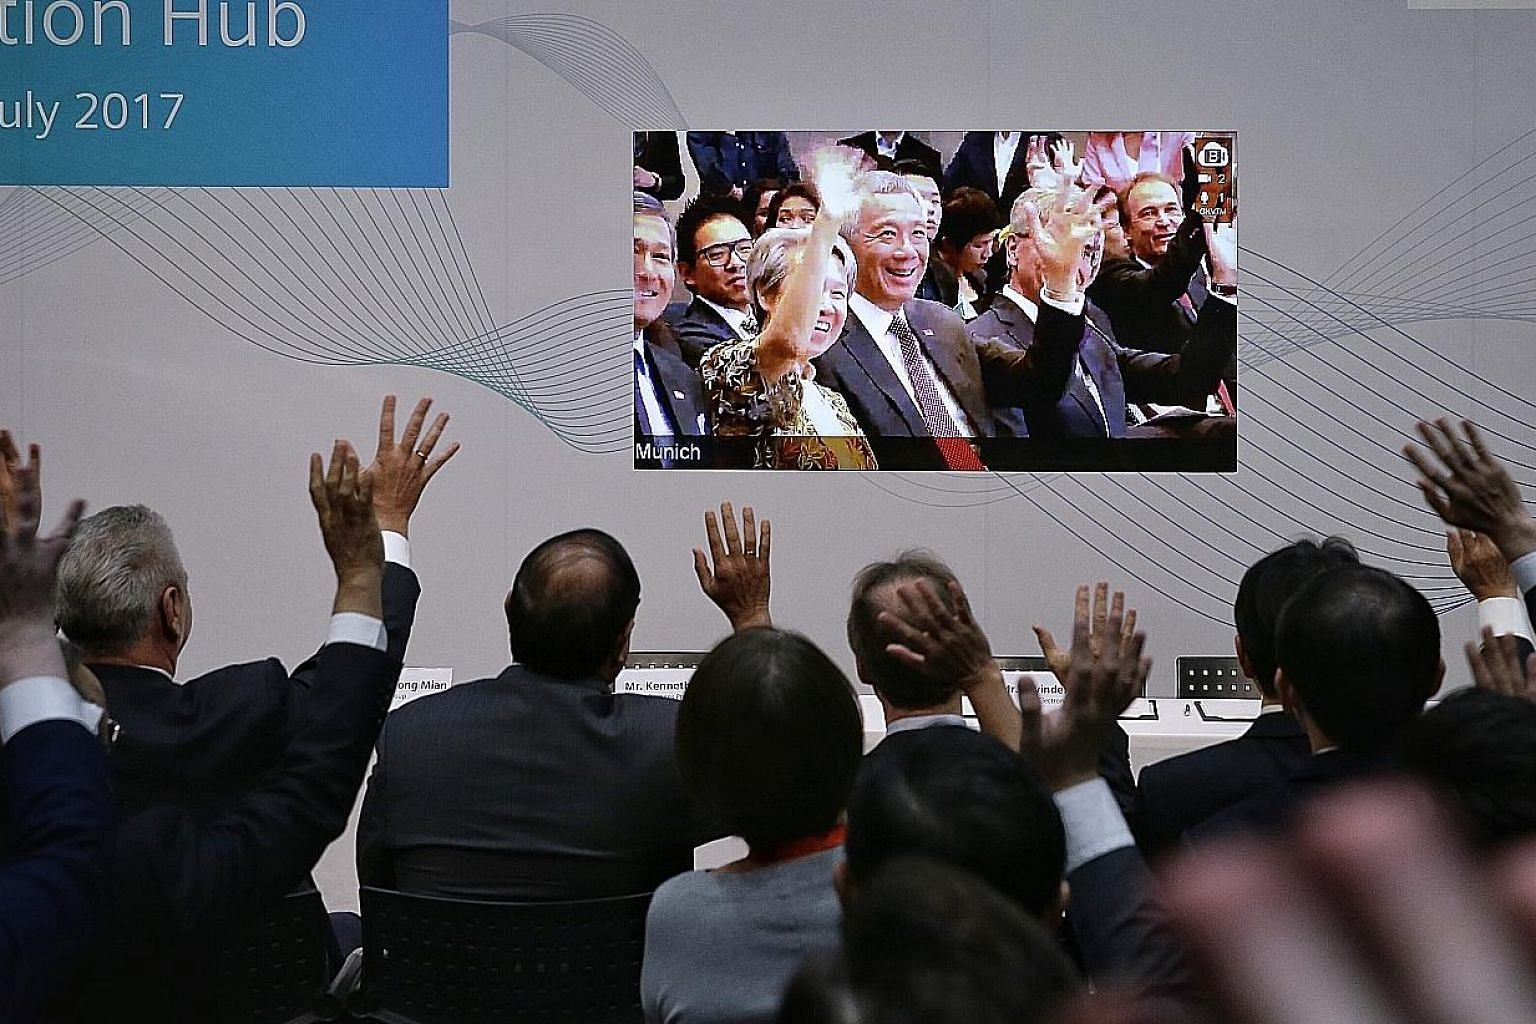 Prime Minister Lee Hsien Loong and Mrs Lee waving over a live video feed from Munich to Minister for Trade and Industry (Industry) S. Iswaran (second from left) and Siemens representatives in Singapore yesterday. PM Lee opened the Siemens Digitalisat